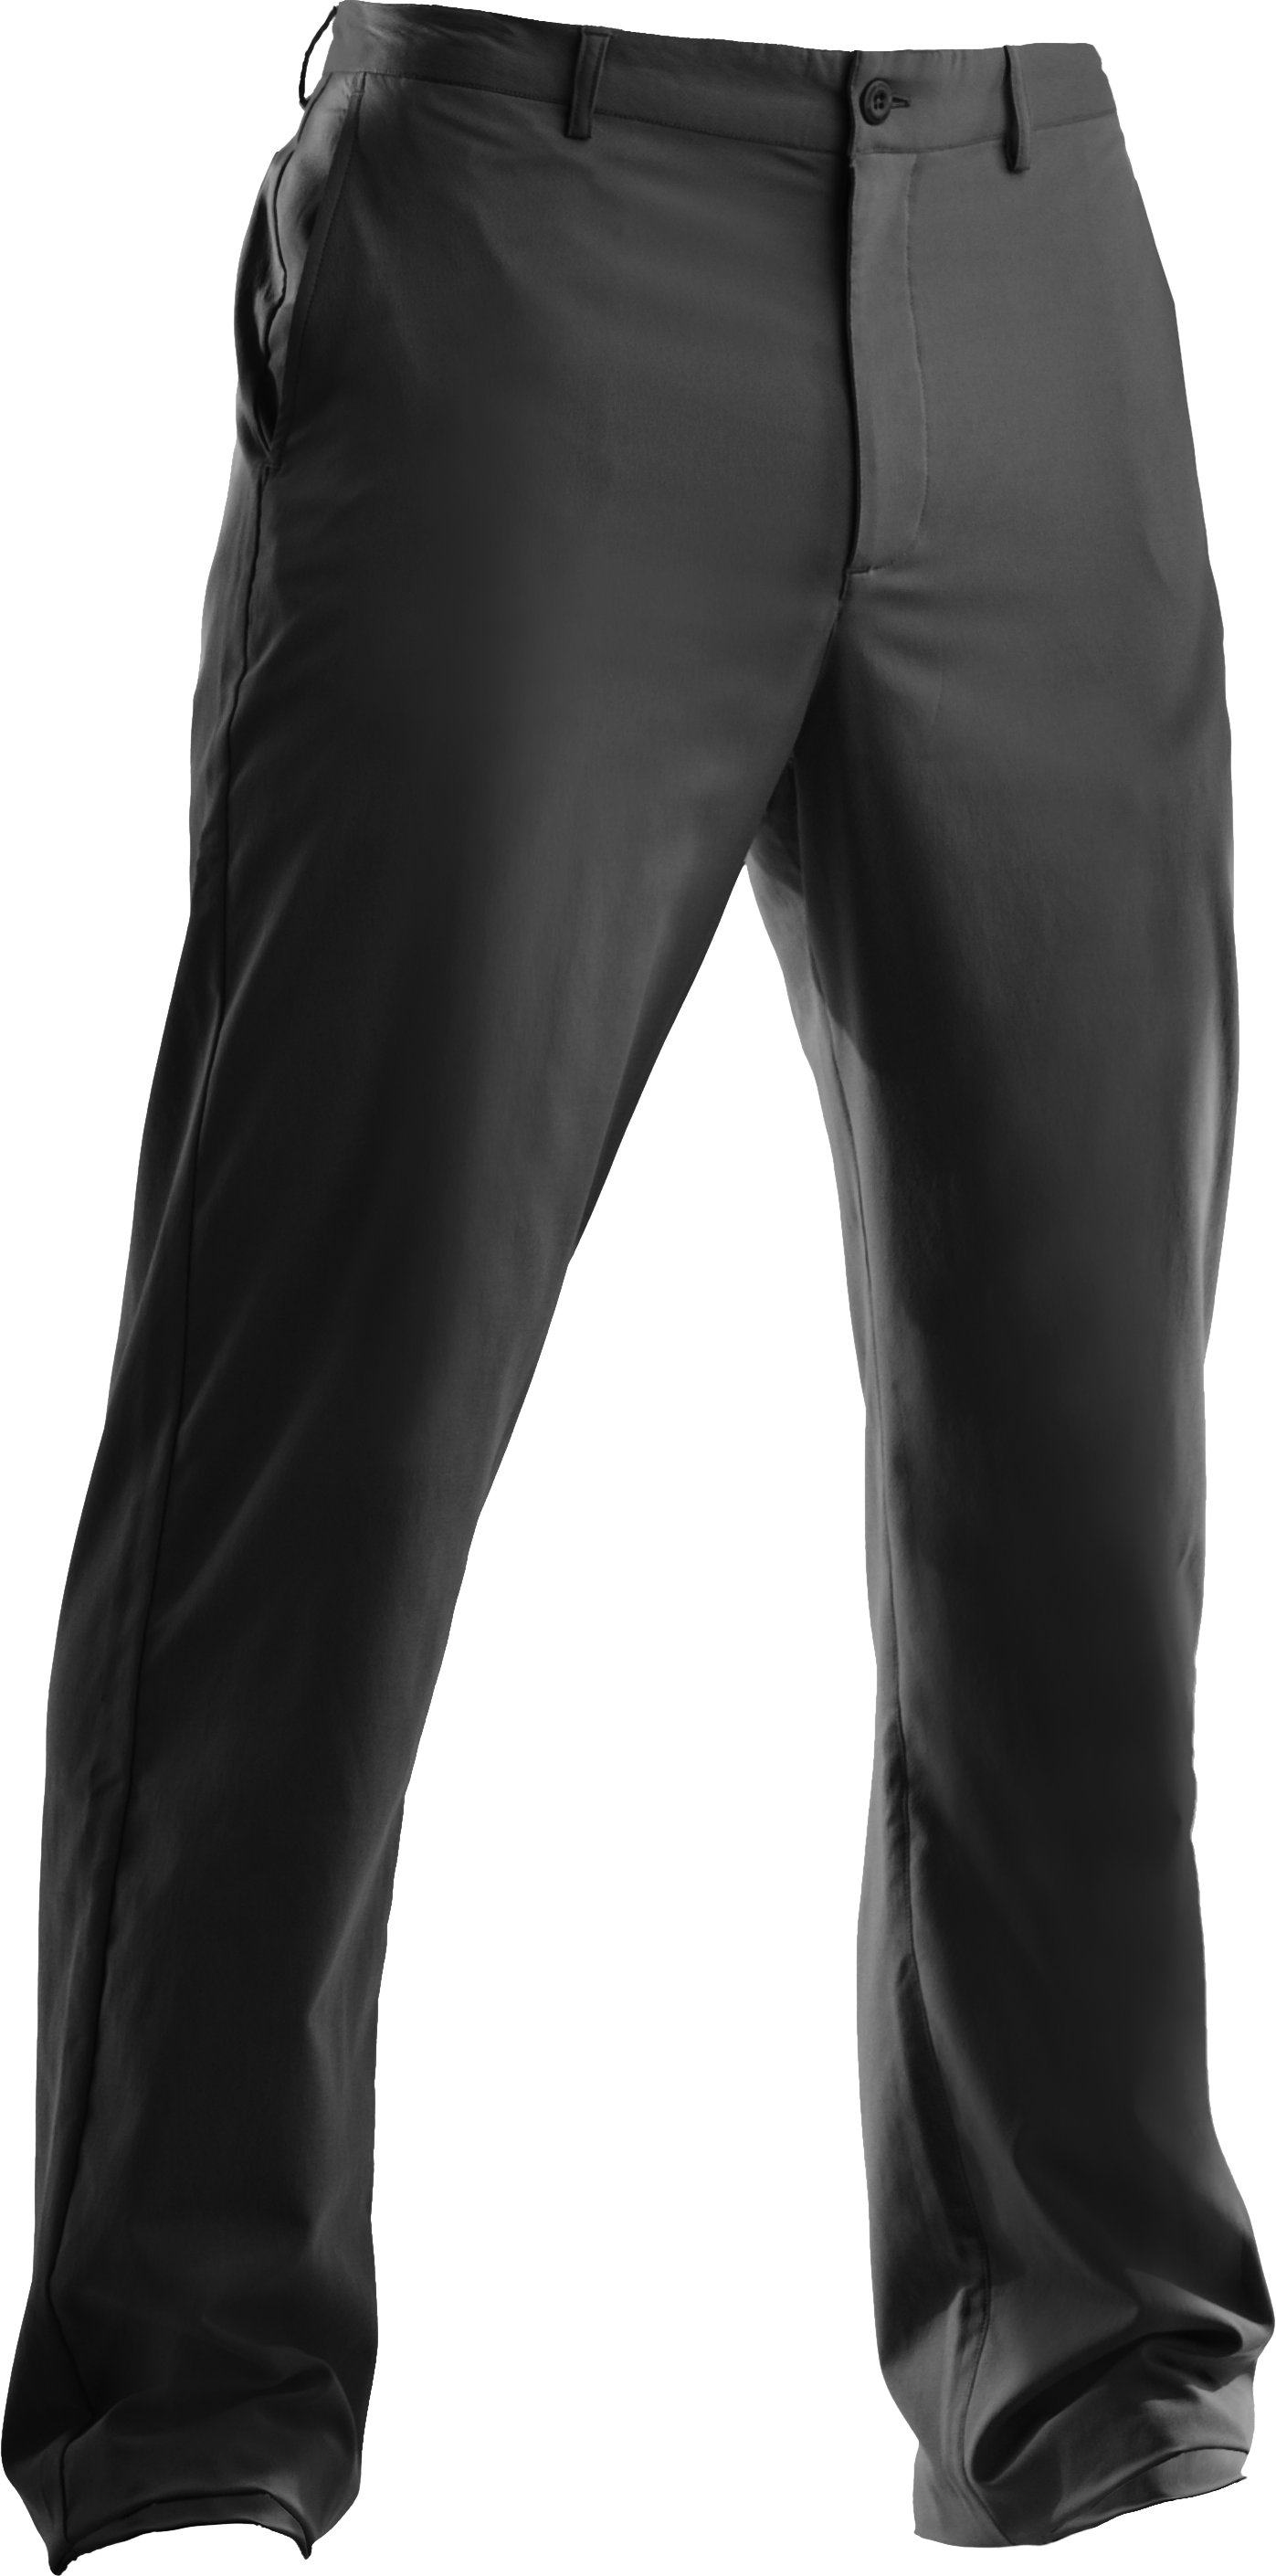 Men's Performance Flat Front Pants, Black , undefined